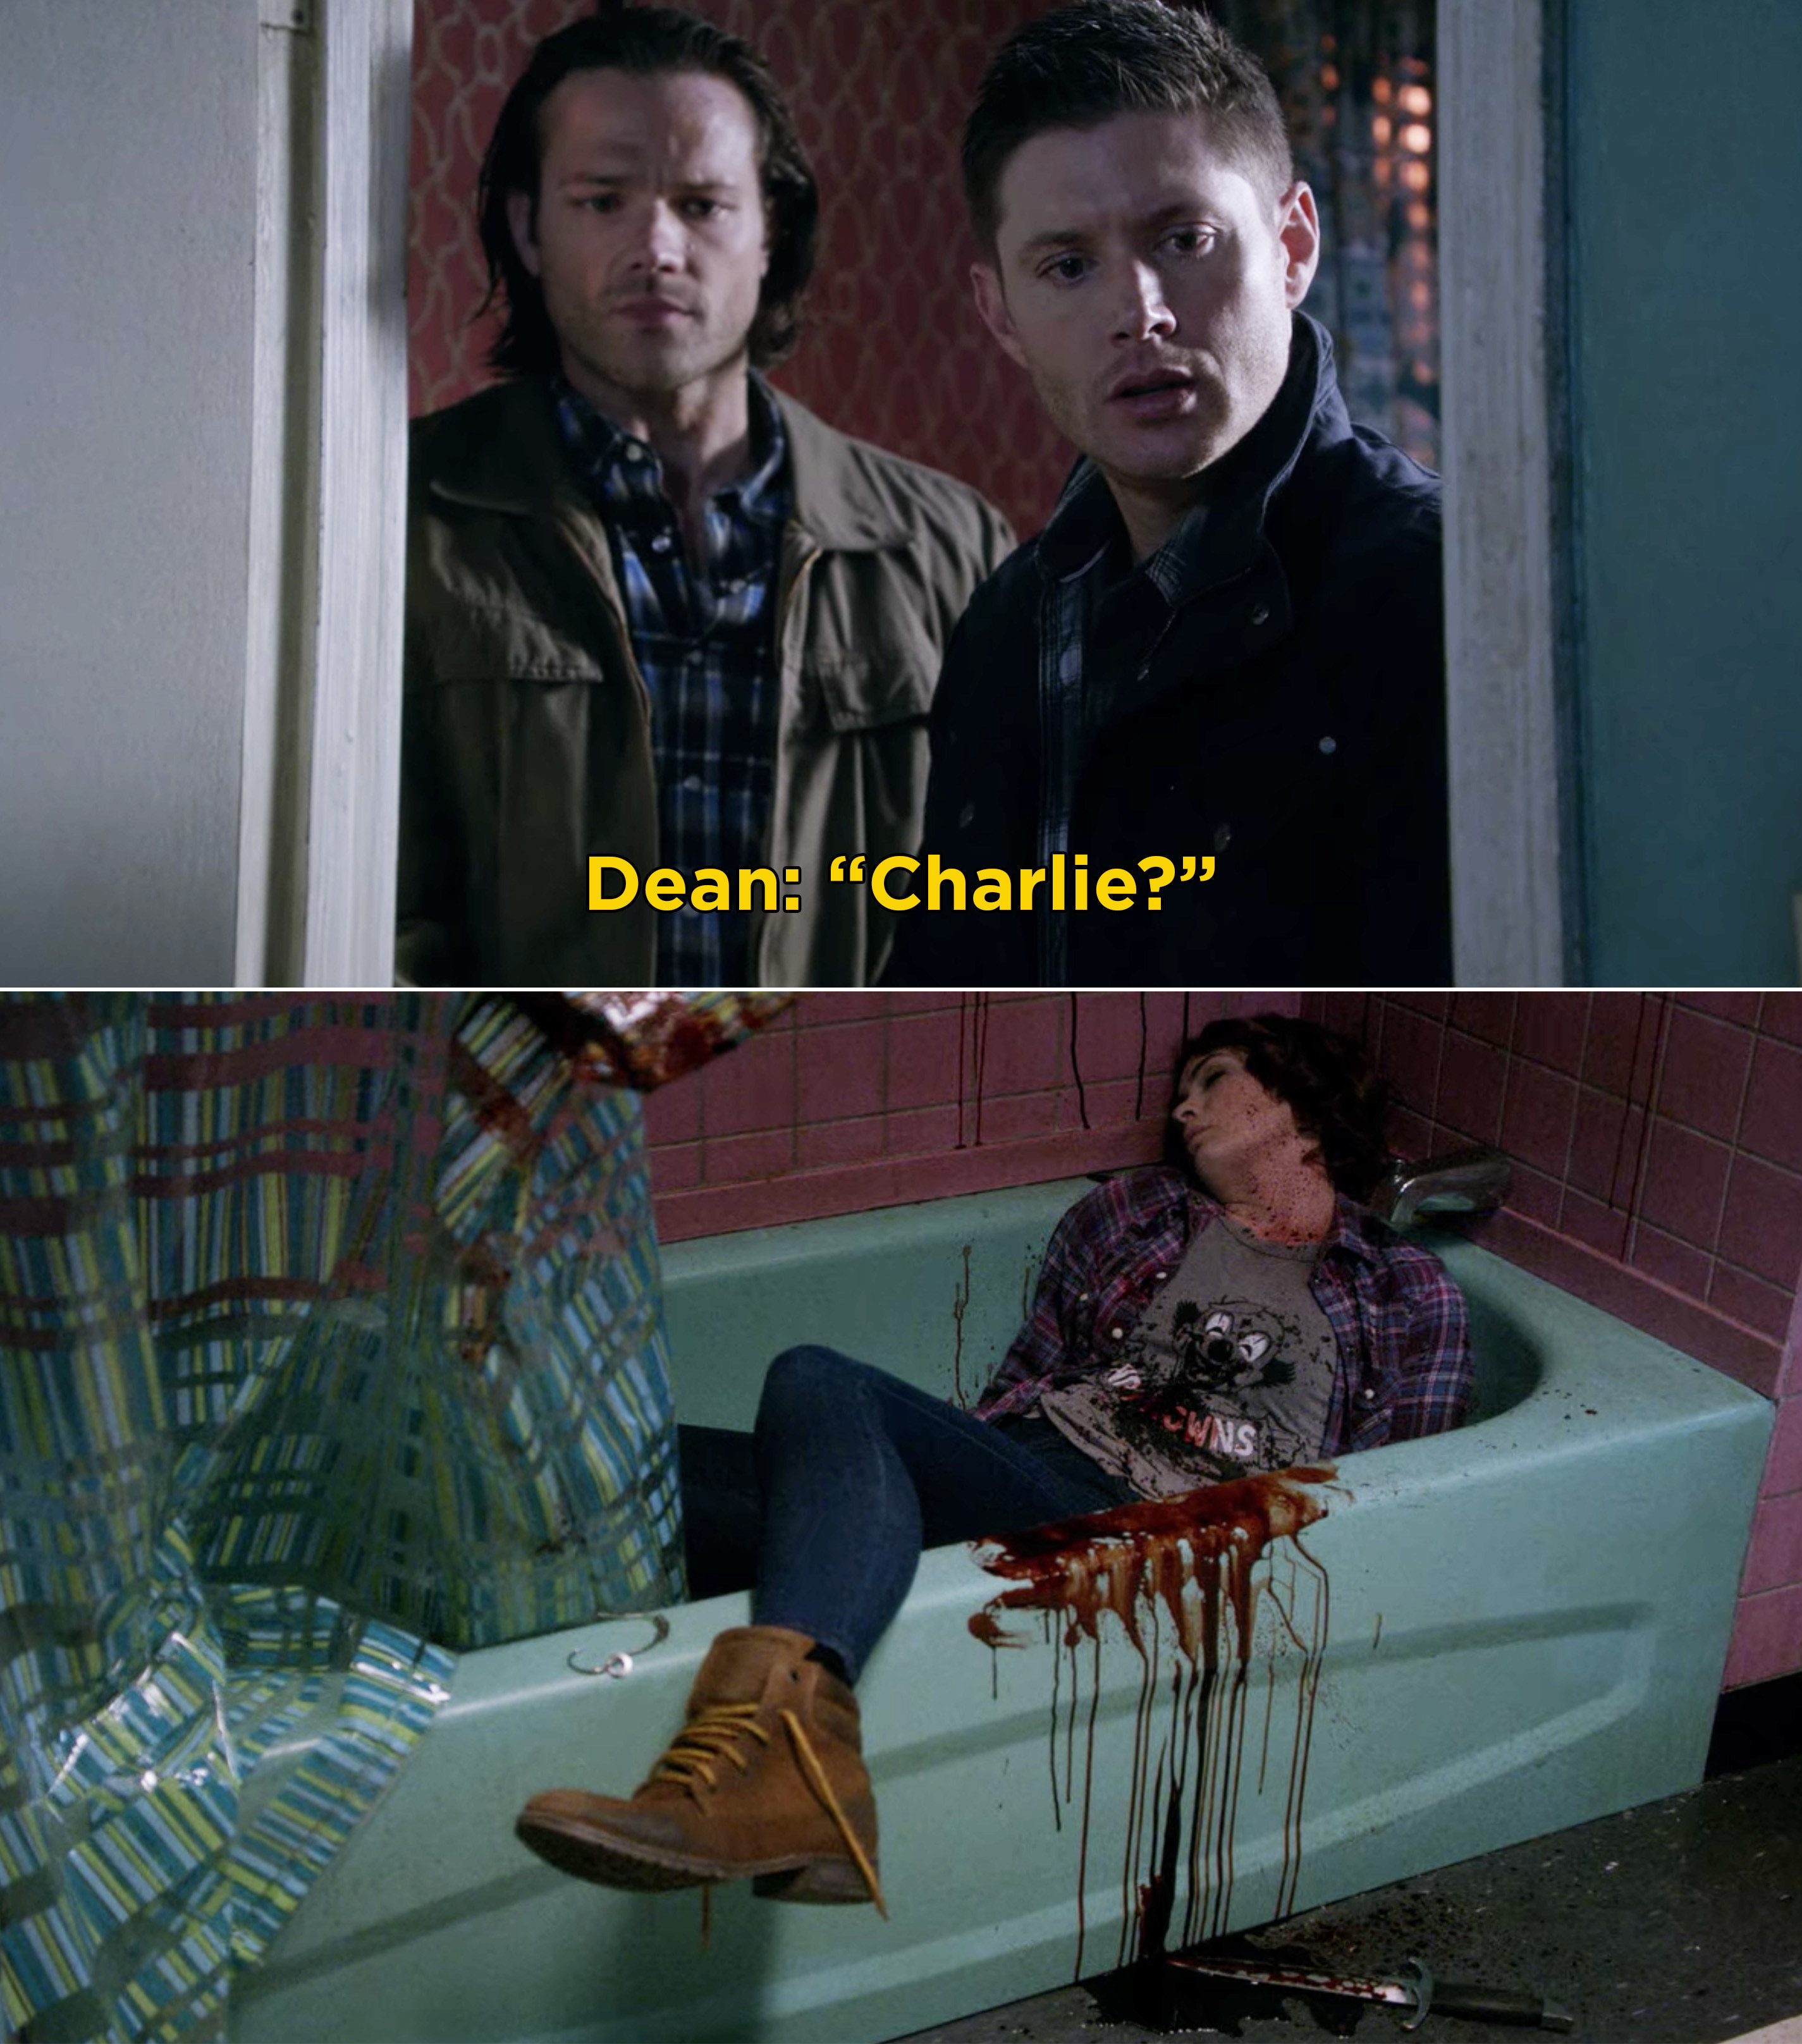 Sam and Dean finding Charlie dead in the bathtub